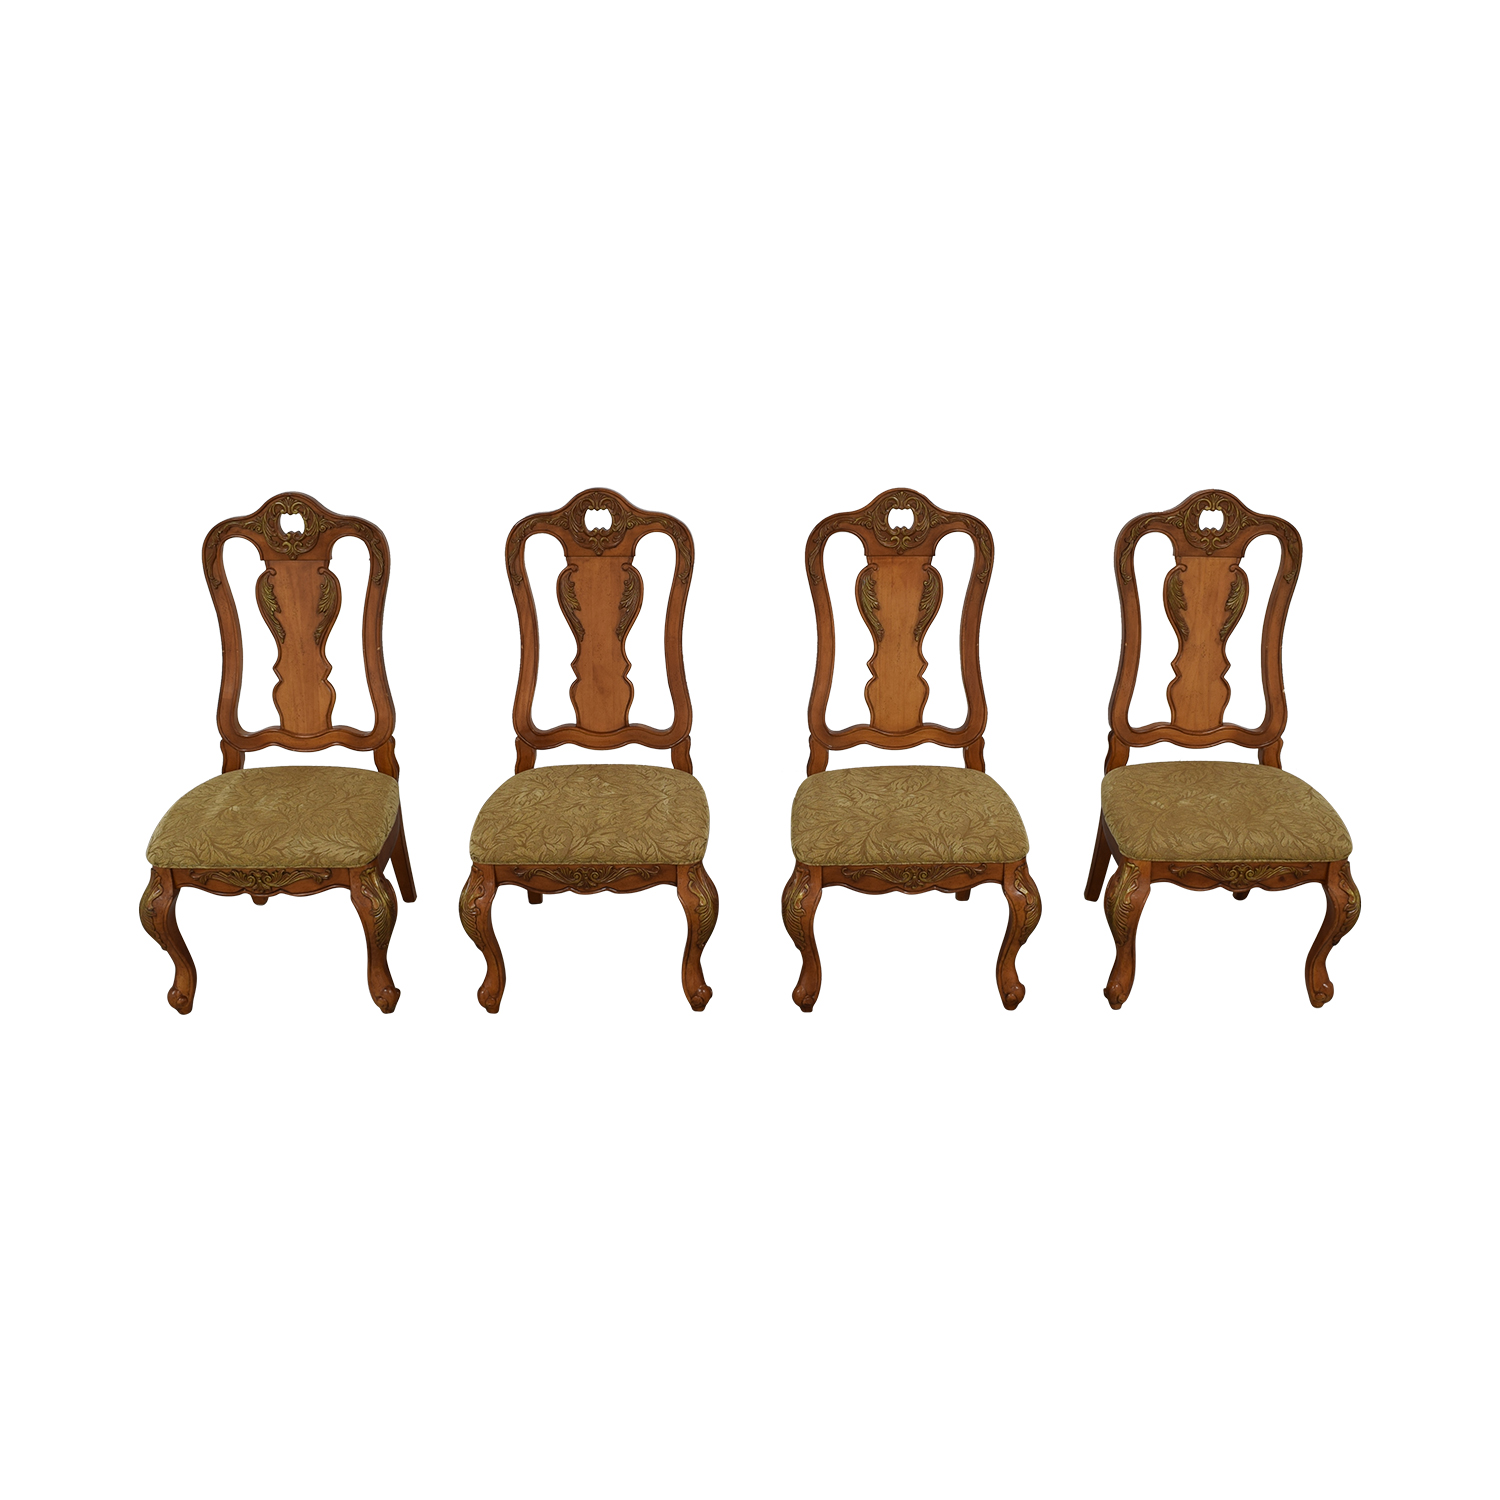 Legacy Classic Furniture Legacy Classic Dining Chairs for sale